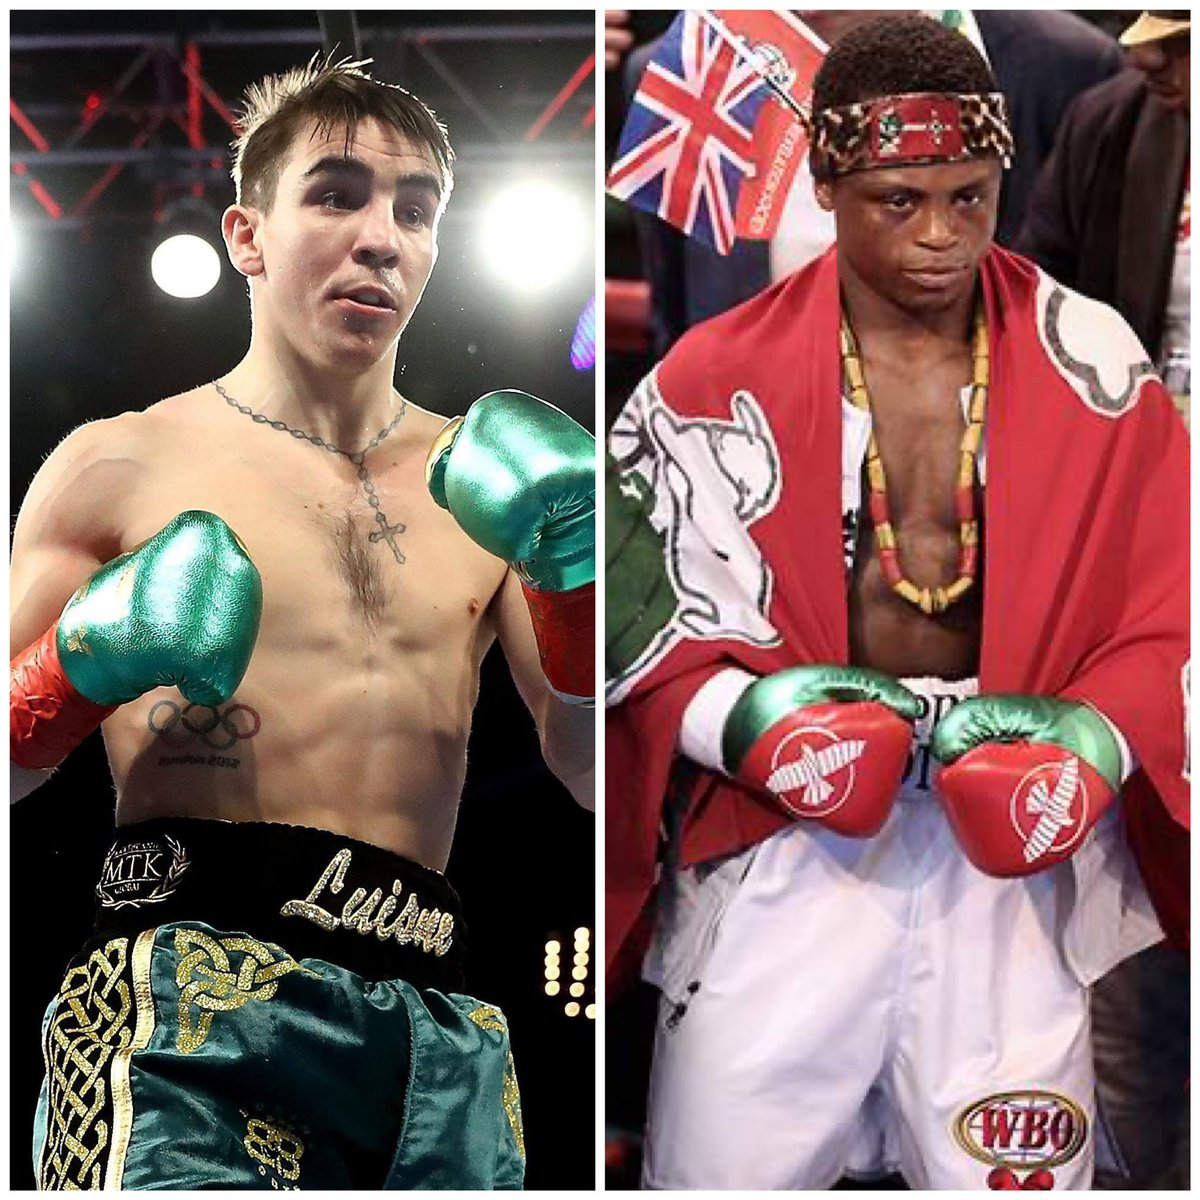 In a Great step up test undefeated Olympian Michael Conlan 14-0-8 KO's will take on Former World Champion Isaac Dogboe 21-2-15 KO's on Tyson Fury's undercard In London December 5th #fighthooknews #jcalderonboxingtalk #toprankboxing #espnboxing @trboxing @ESPNRingside https://t.co/4dsid48DmK